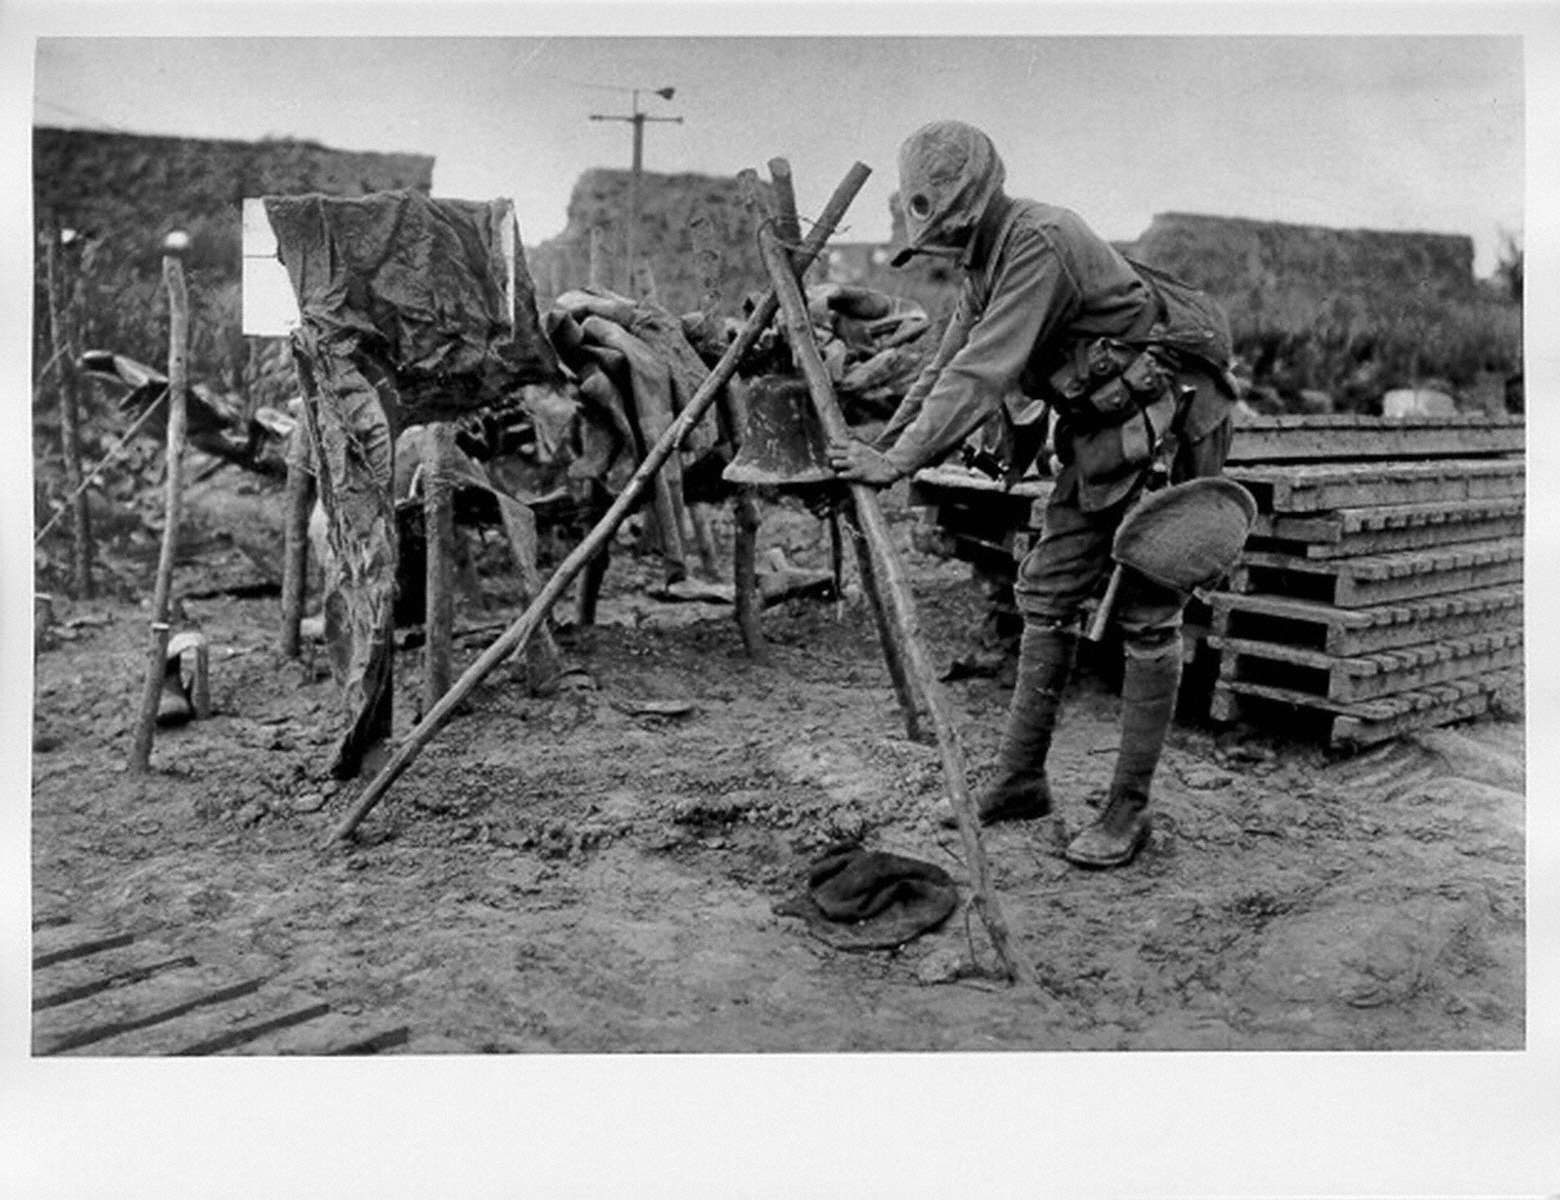 the 20th century war The early 20th century the early 20th century was marked by rapid industrial, economic, social, and cultural change, which influenced the worldview of many and set the stage for new artistic movements with the outbreak of world war i in 1914.